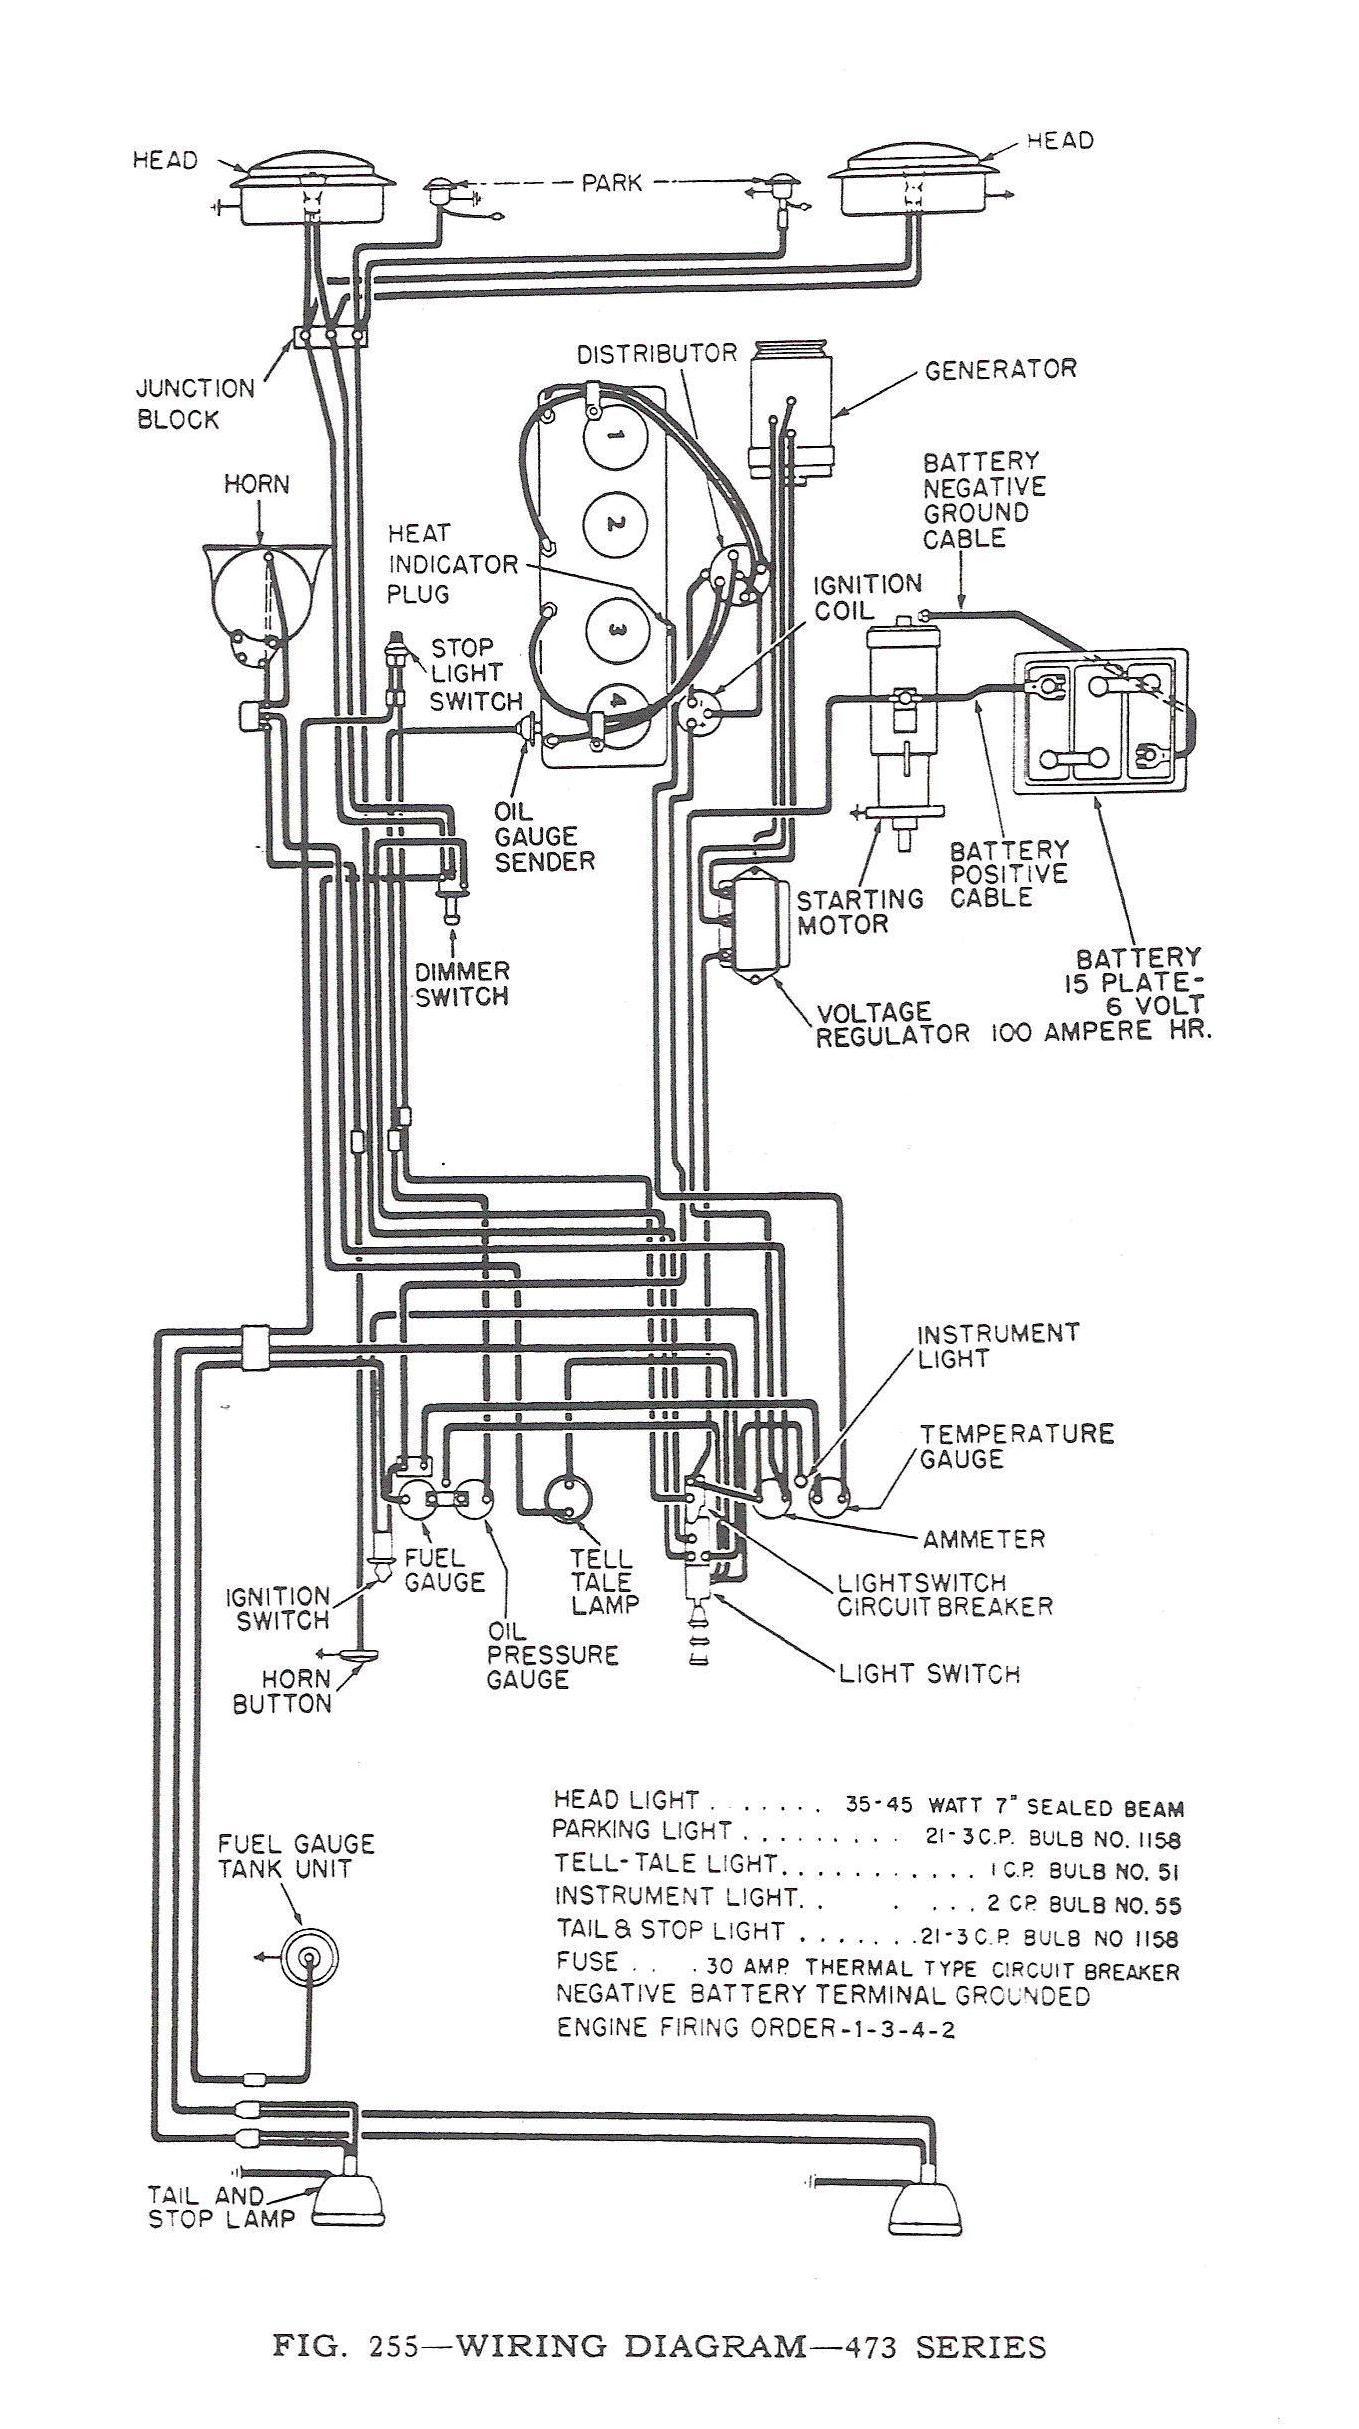 1952 Jeep Series 473 Wiring Diagrams Google Search Willys Jeep Jeep Cj7 Willys